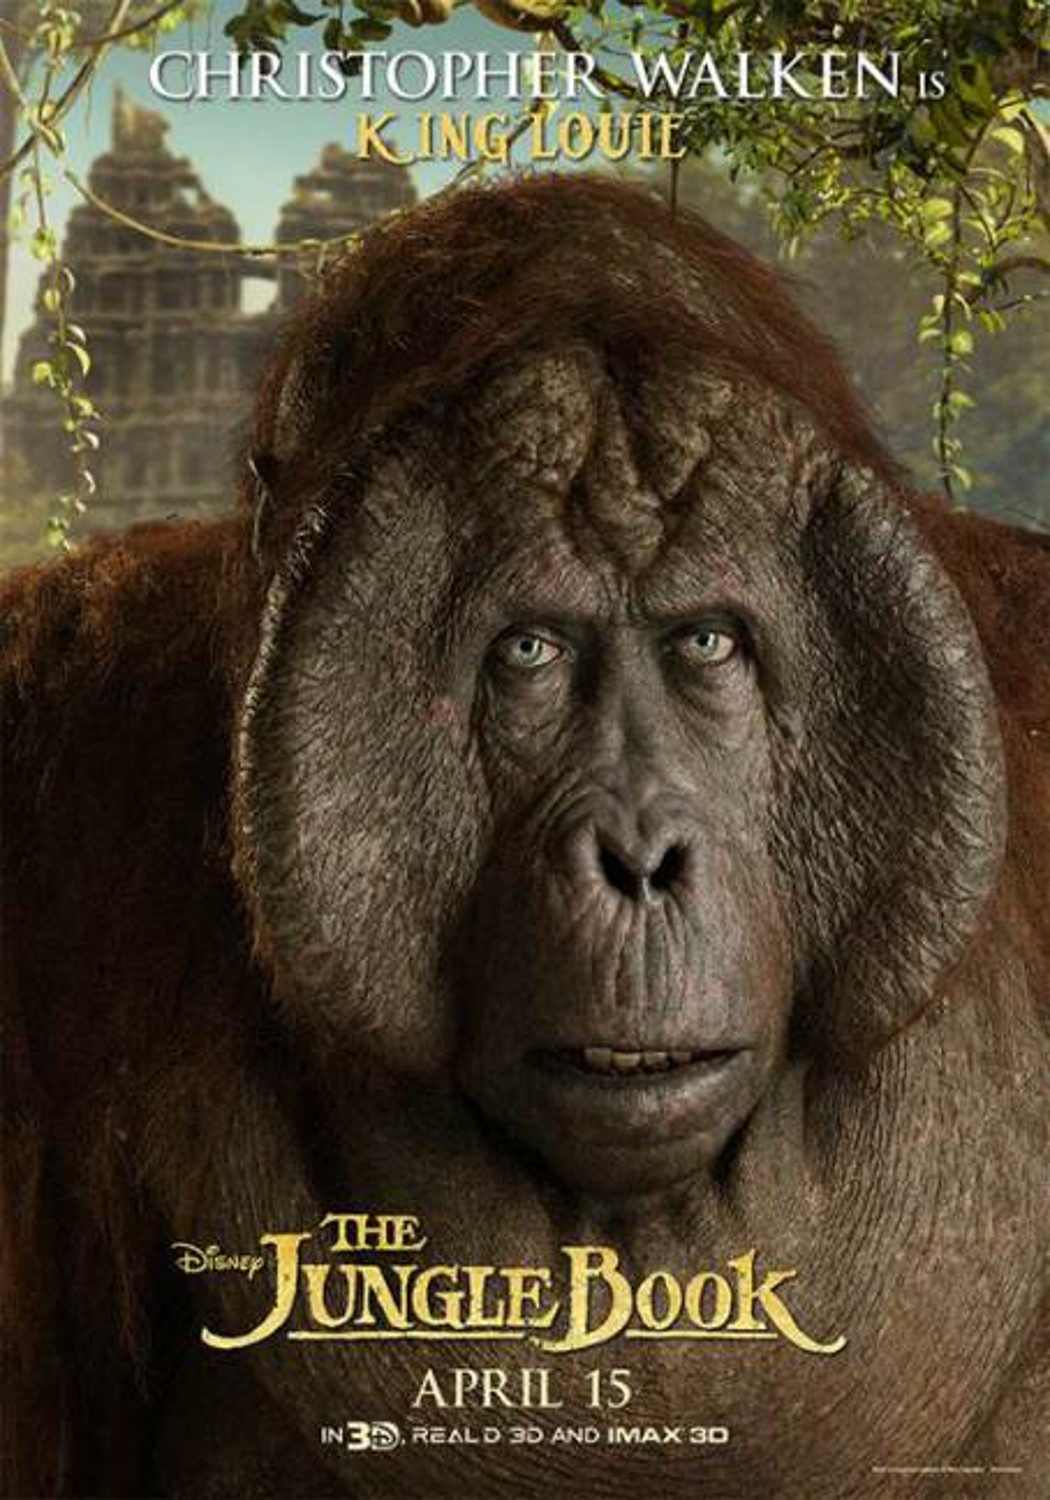 King Louie 'The Jungle Book' Poster